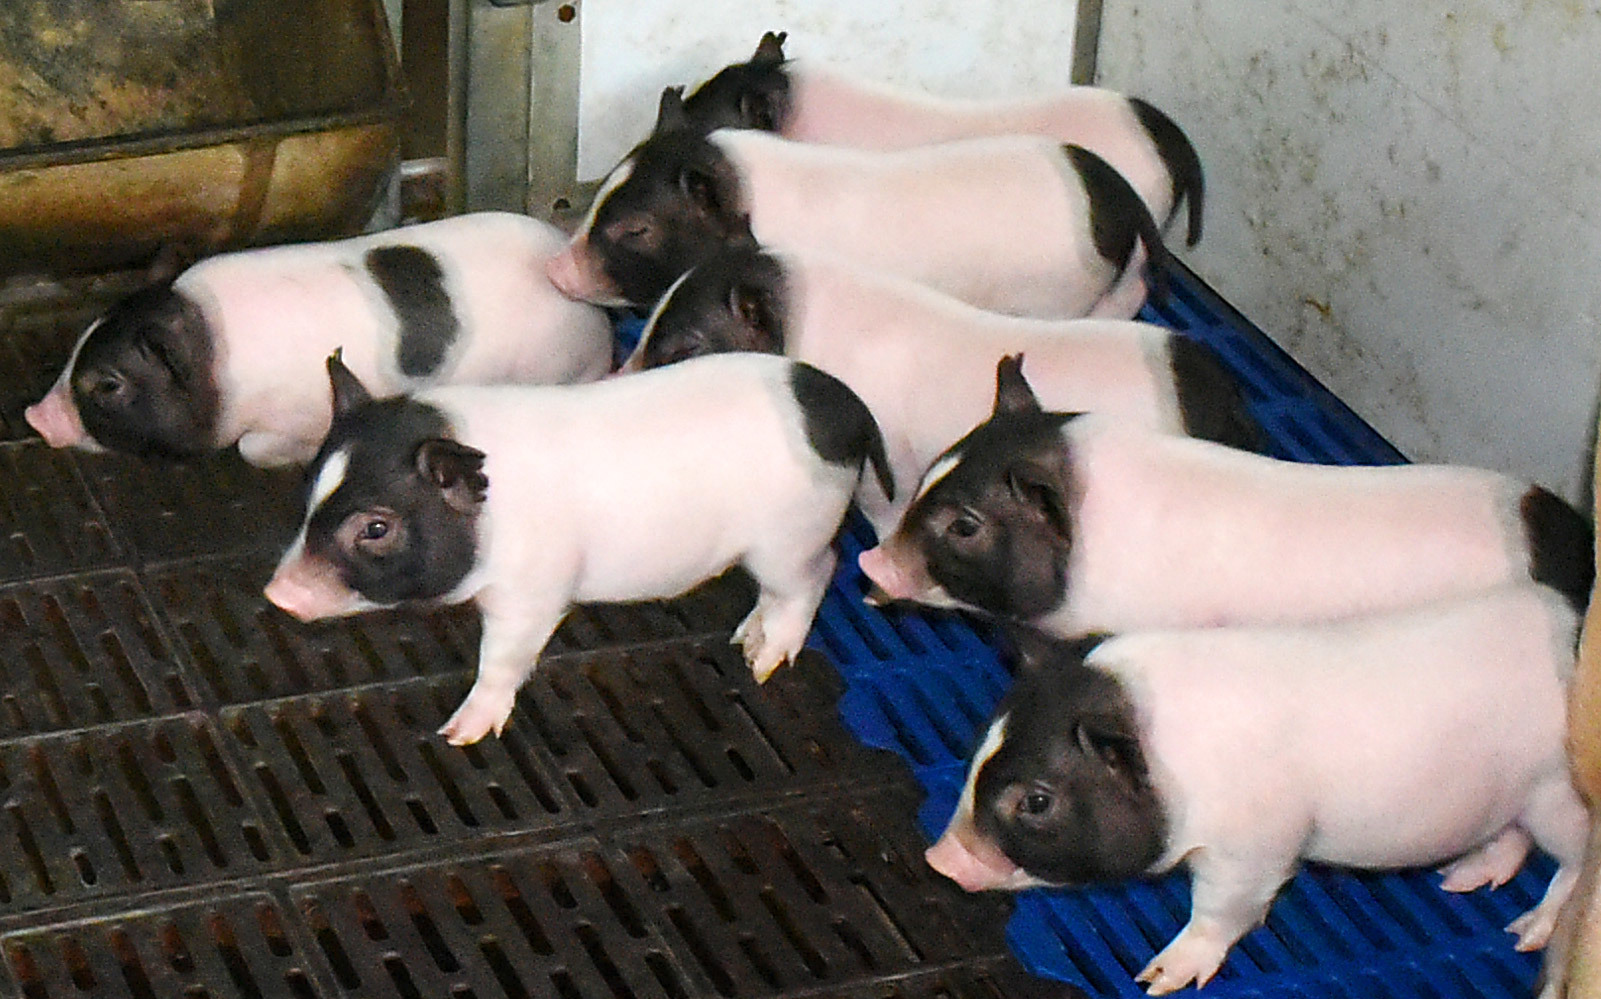 CRISPR Bacon: Chinese Scientists Create Genetically Modified Low-Fat Pigs